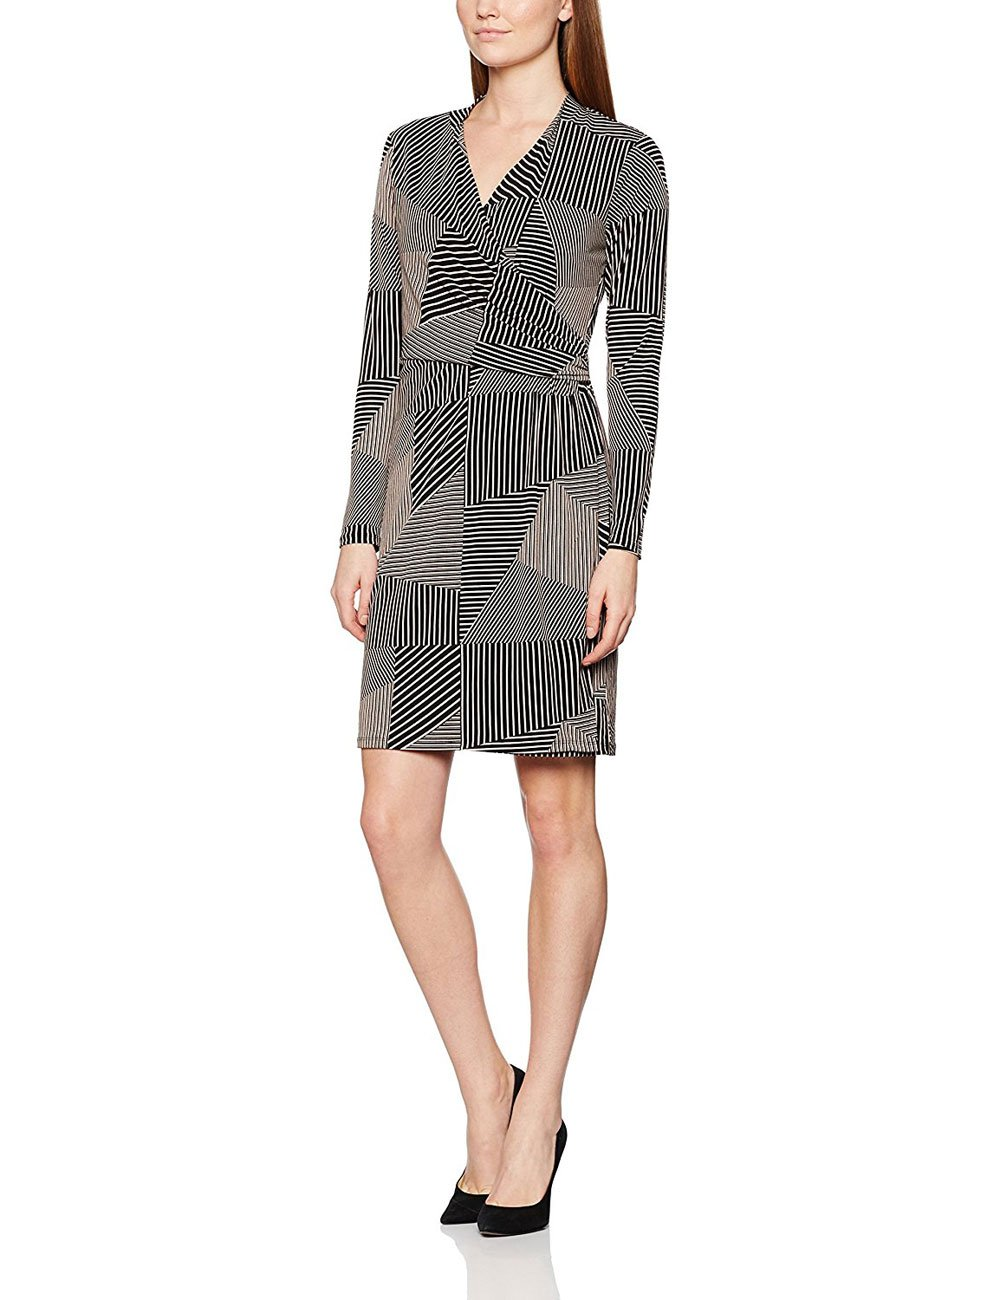 Esprit Nude 236taille 017eo1e014 Collection FabricantSmallFemme RobeBeigedusty IHebEDYW29